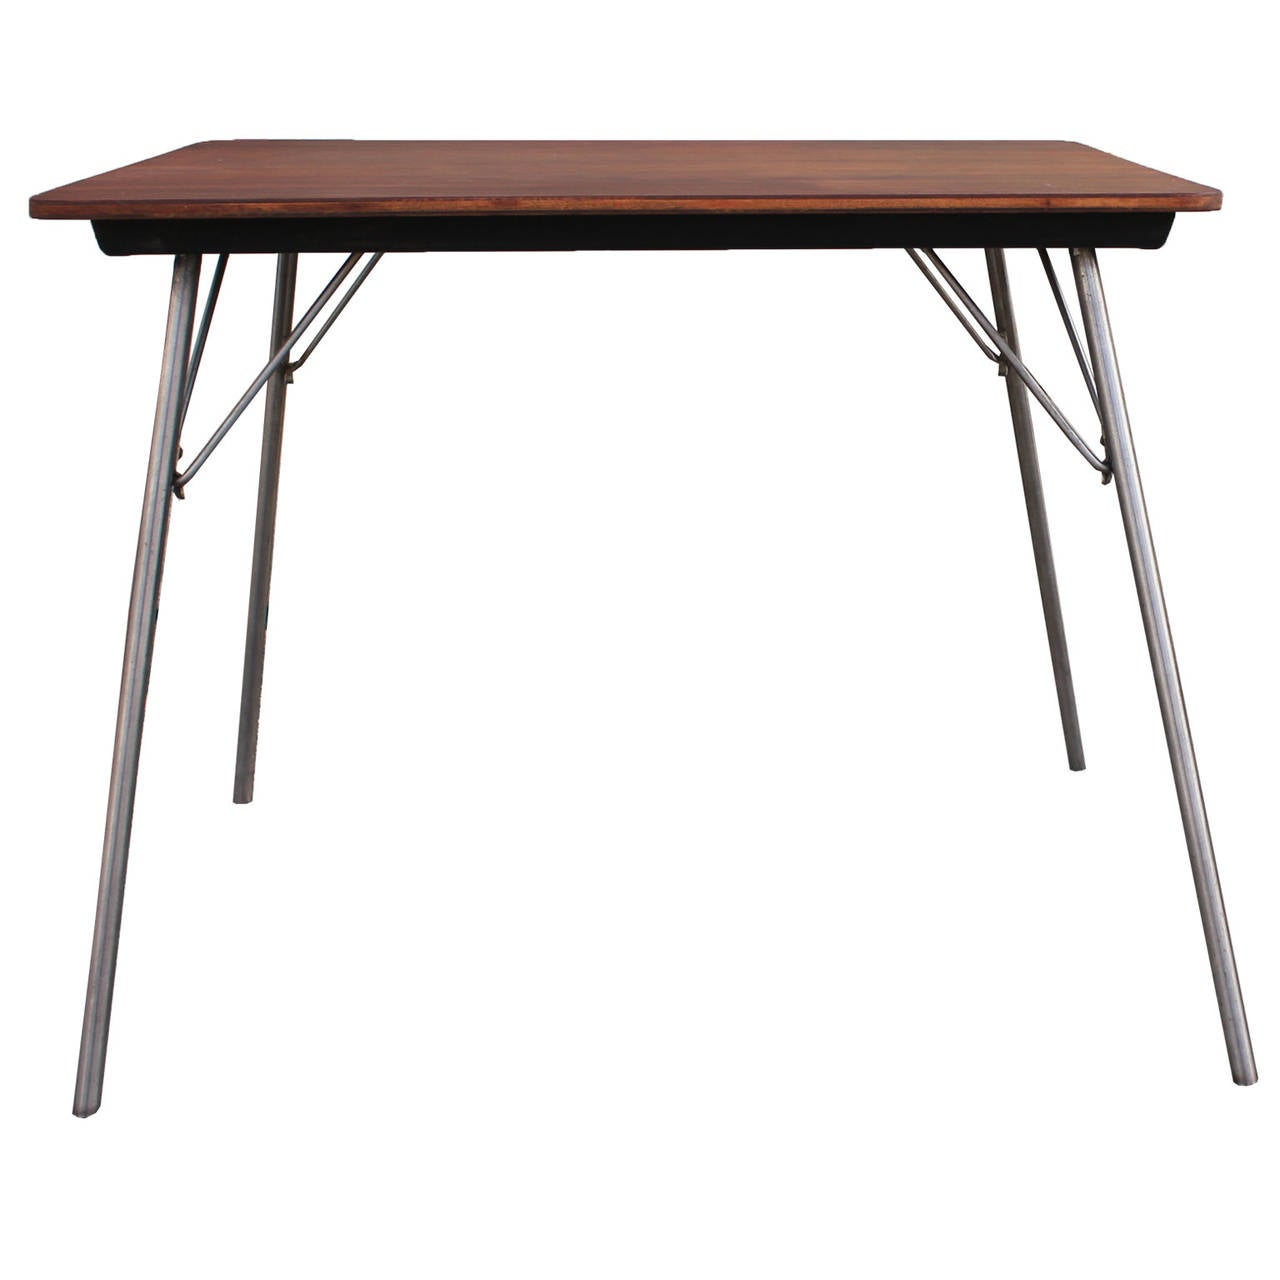 rare eames for herman miller it  incidental table walnut at stdibs - rare eames for herman miller it  incidental table walnut